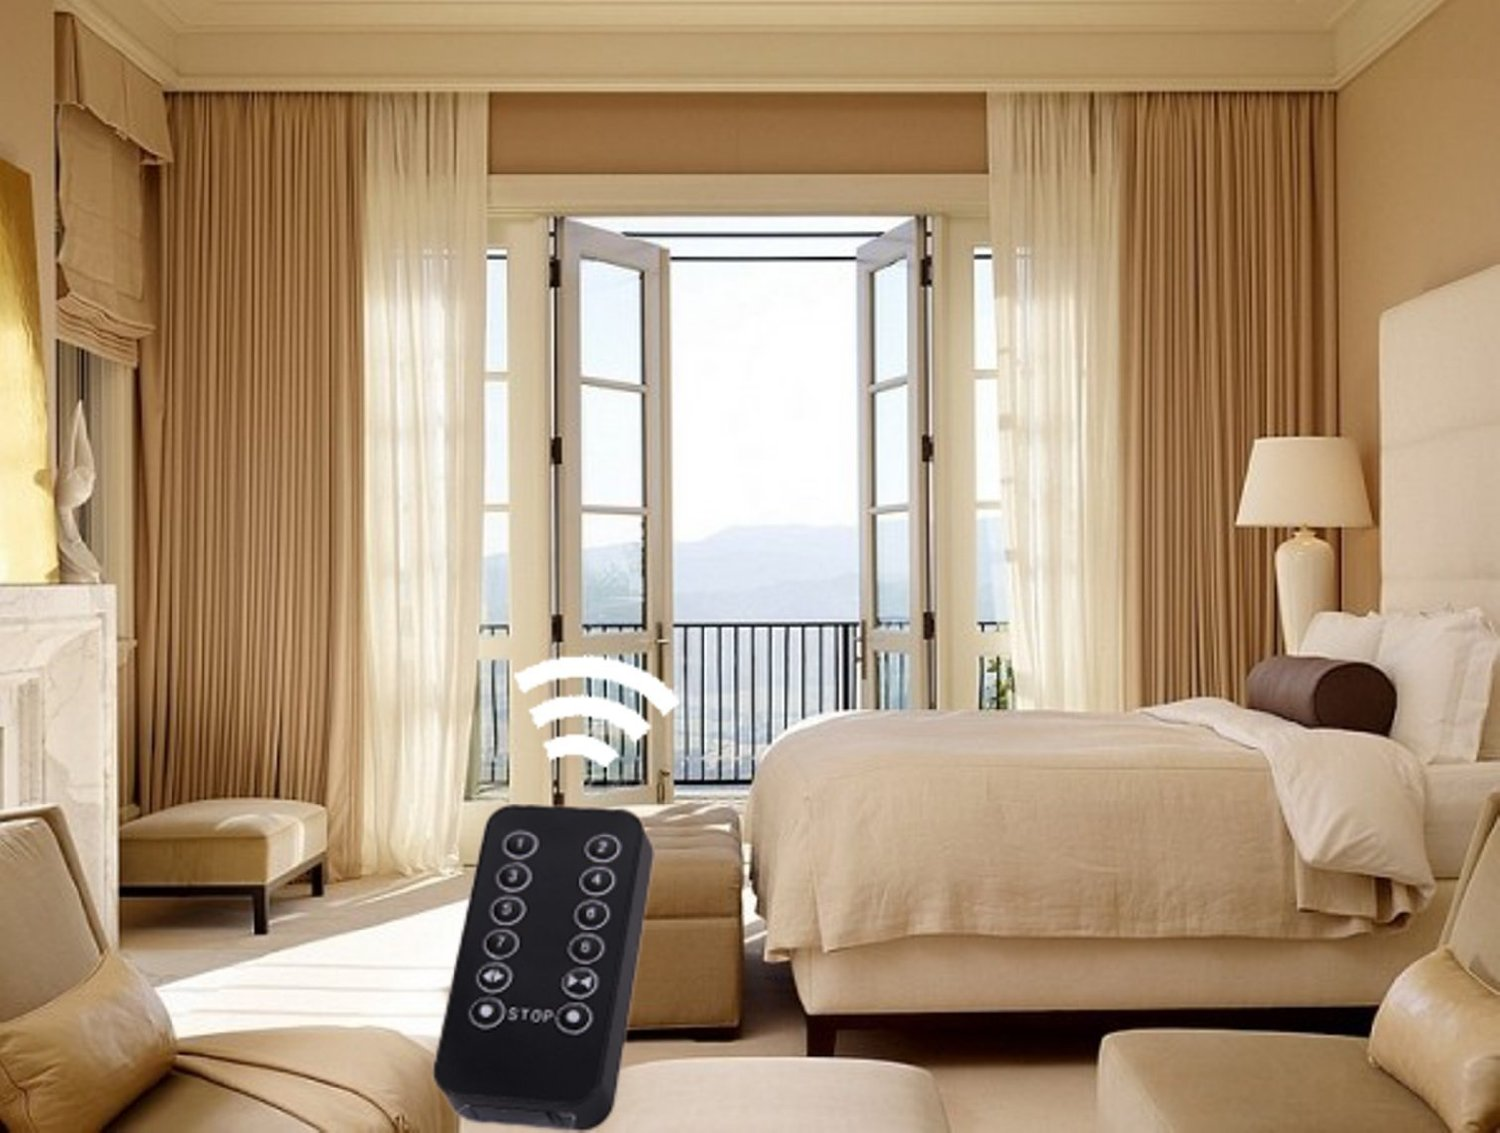 android blinds best motorized and for solar home smart drapes shades